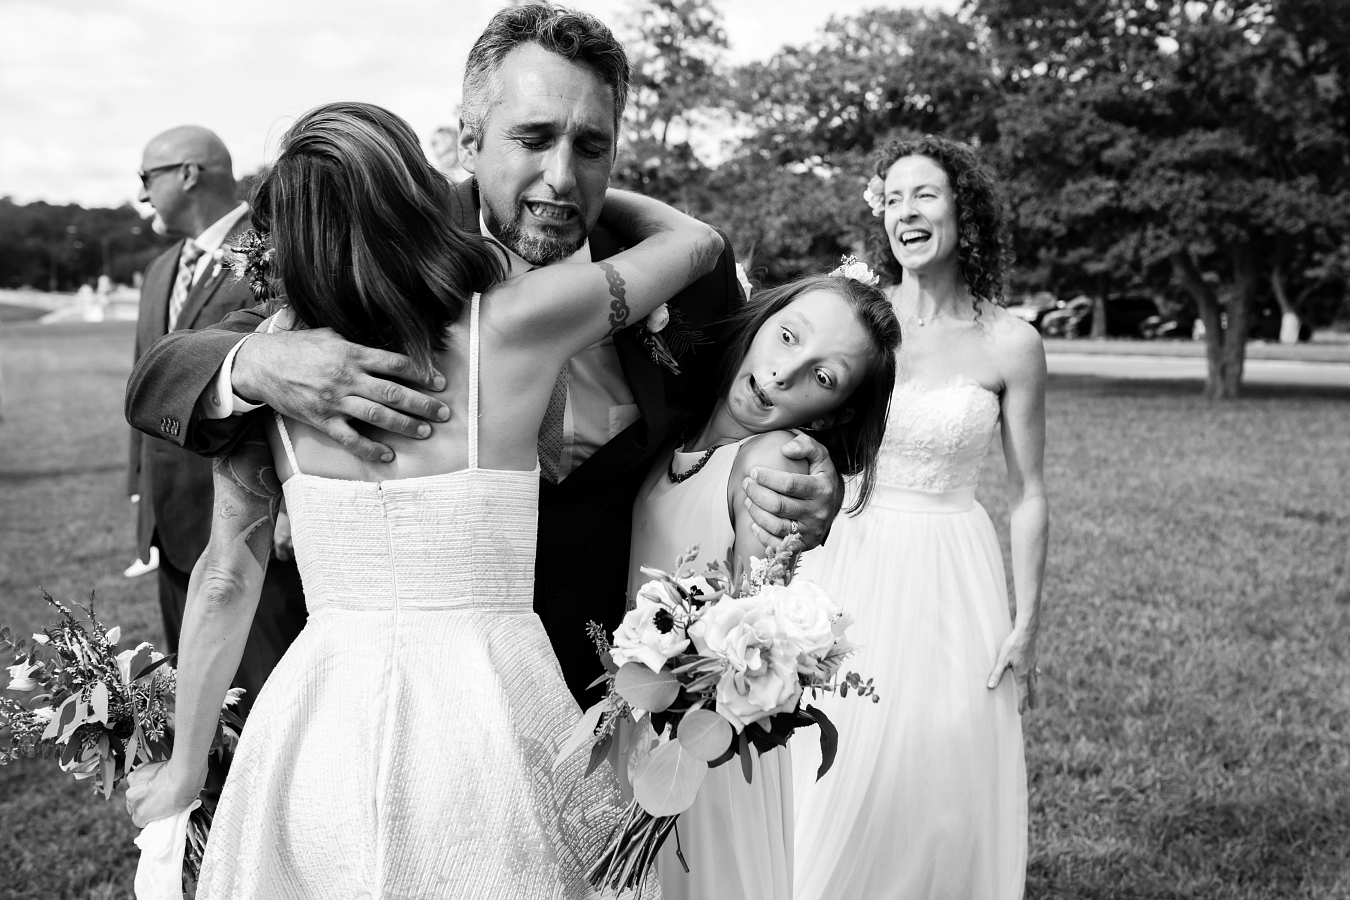 Best Wedding Day Moments